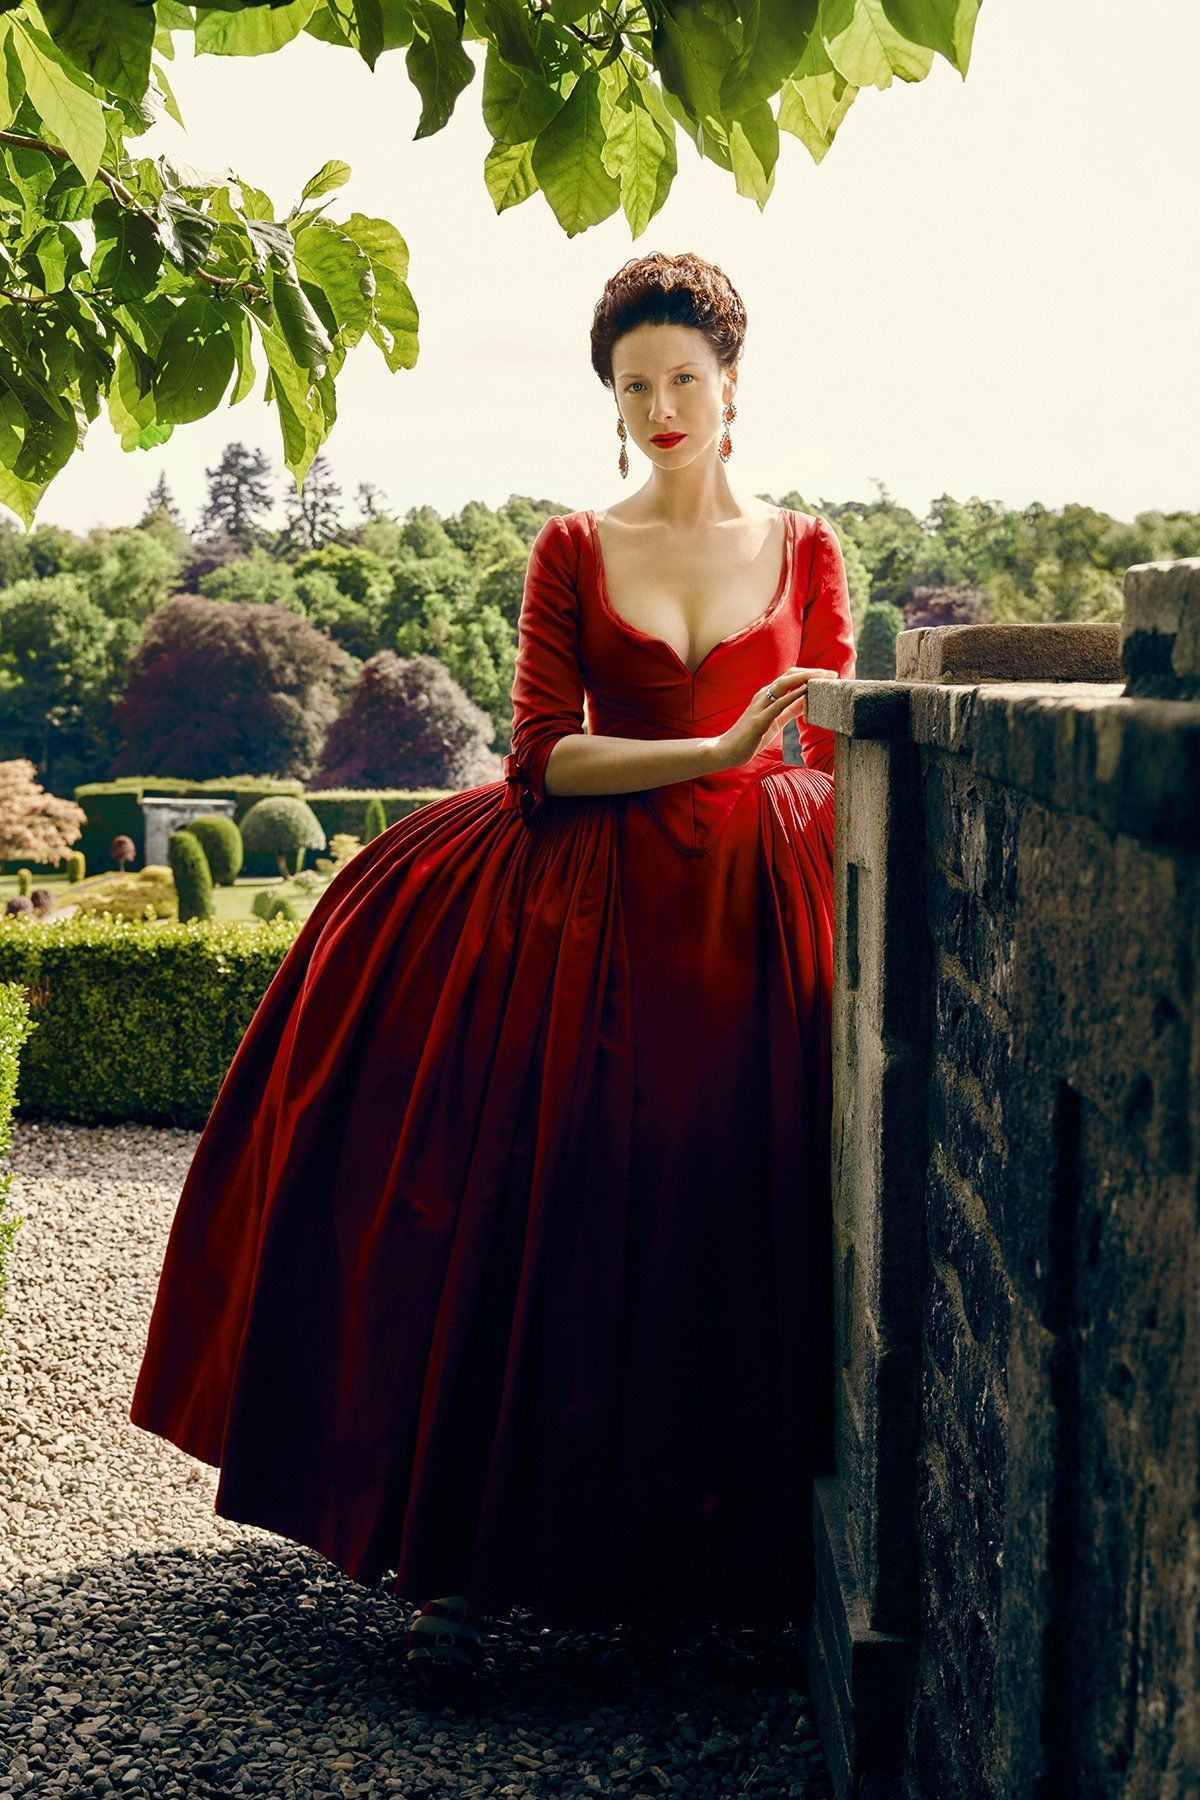 tiny-librarian: A promo shot of Claire in her... | Renaissance and ...